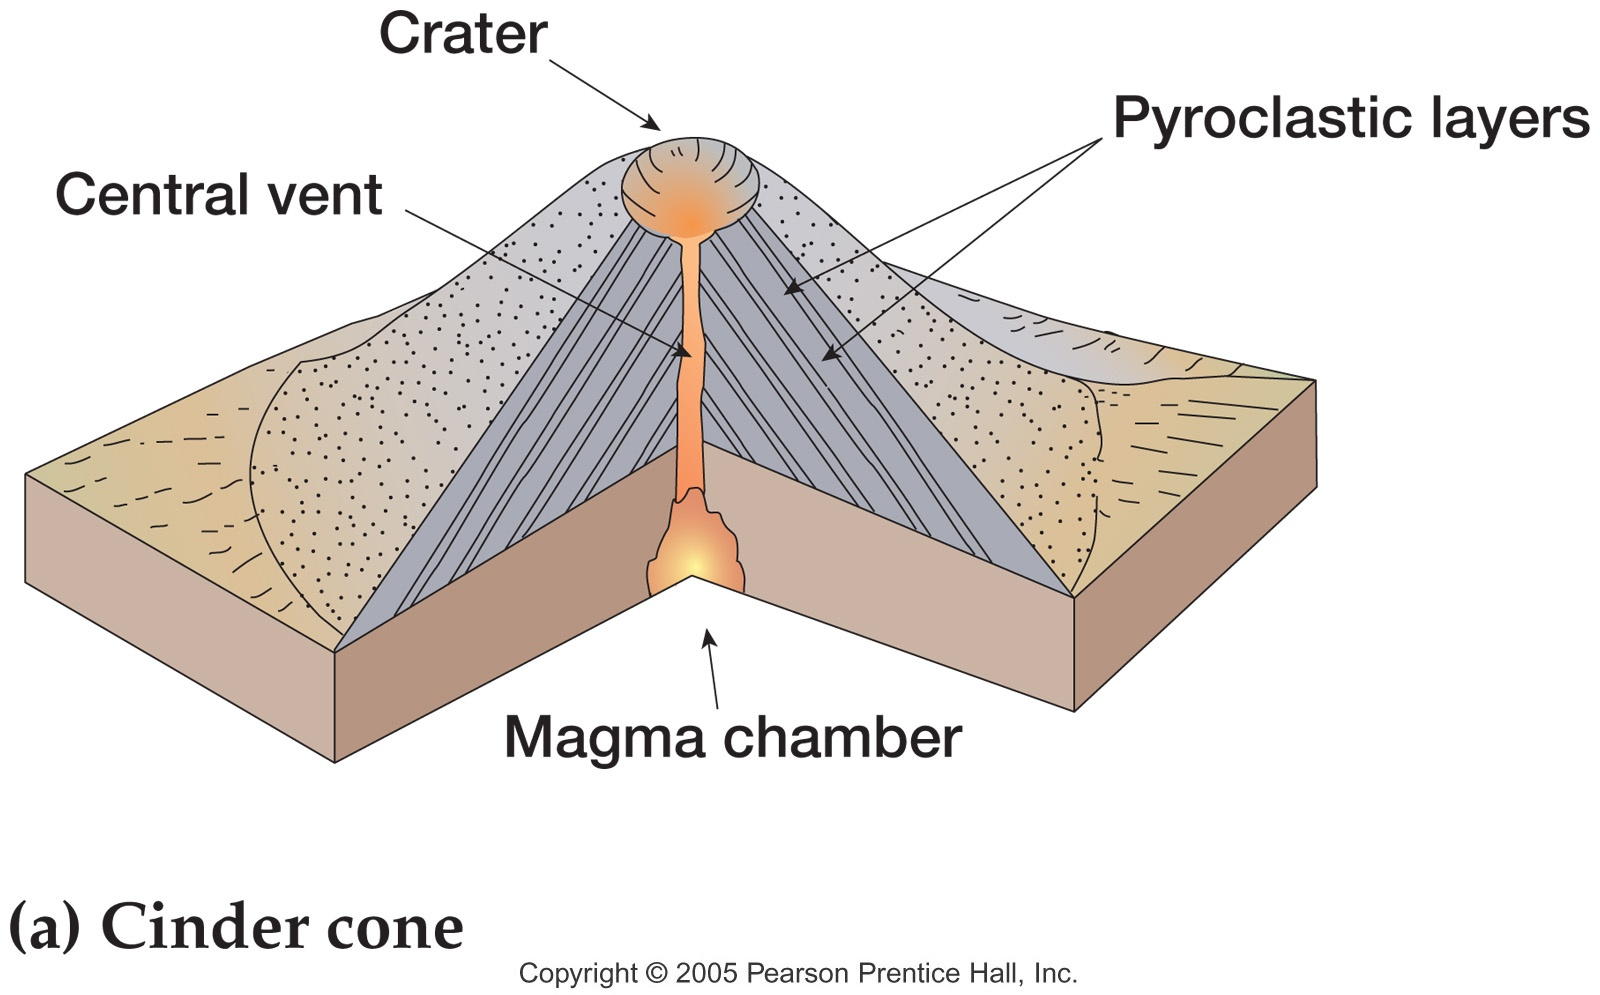 how is composite volcano different from the others? quoracinder cone volcanoes are fairly small, generally only about 300 feet meter tall and not rising more than 1,200 feet they can build up over short periods